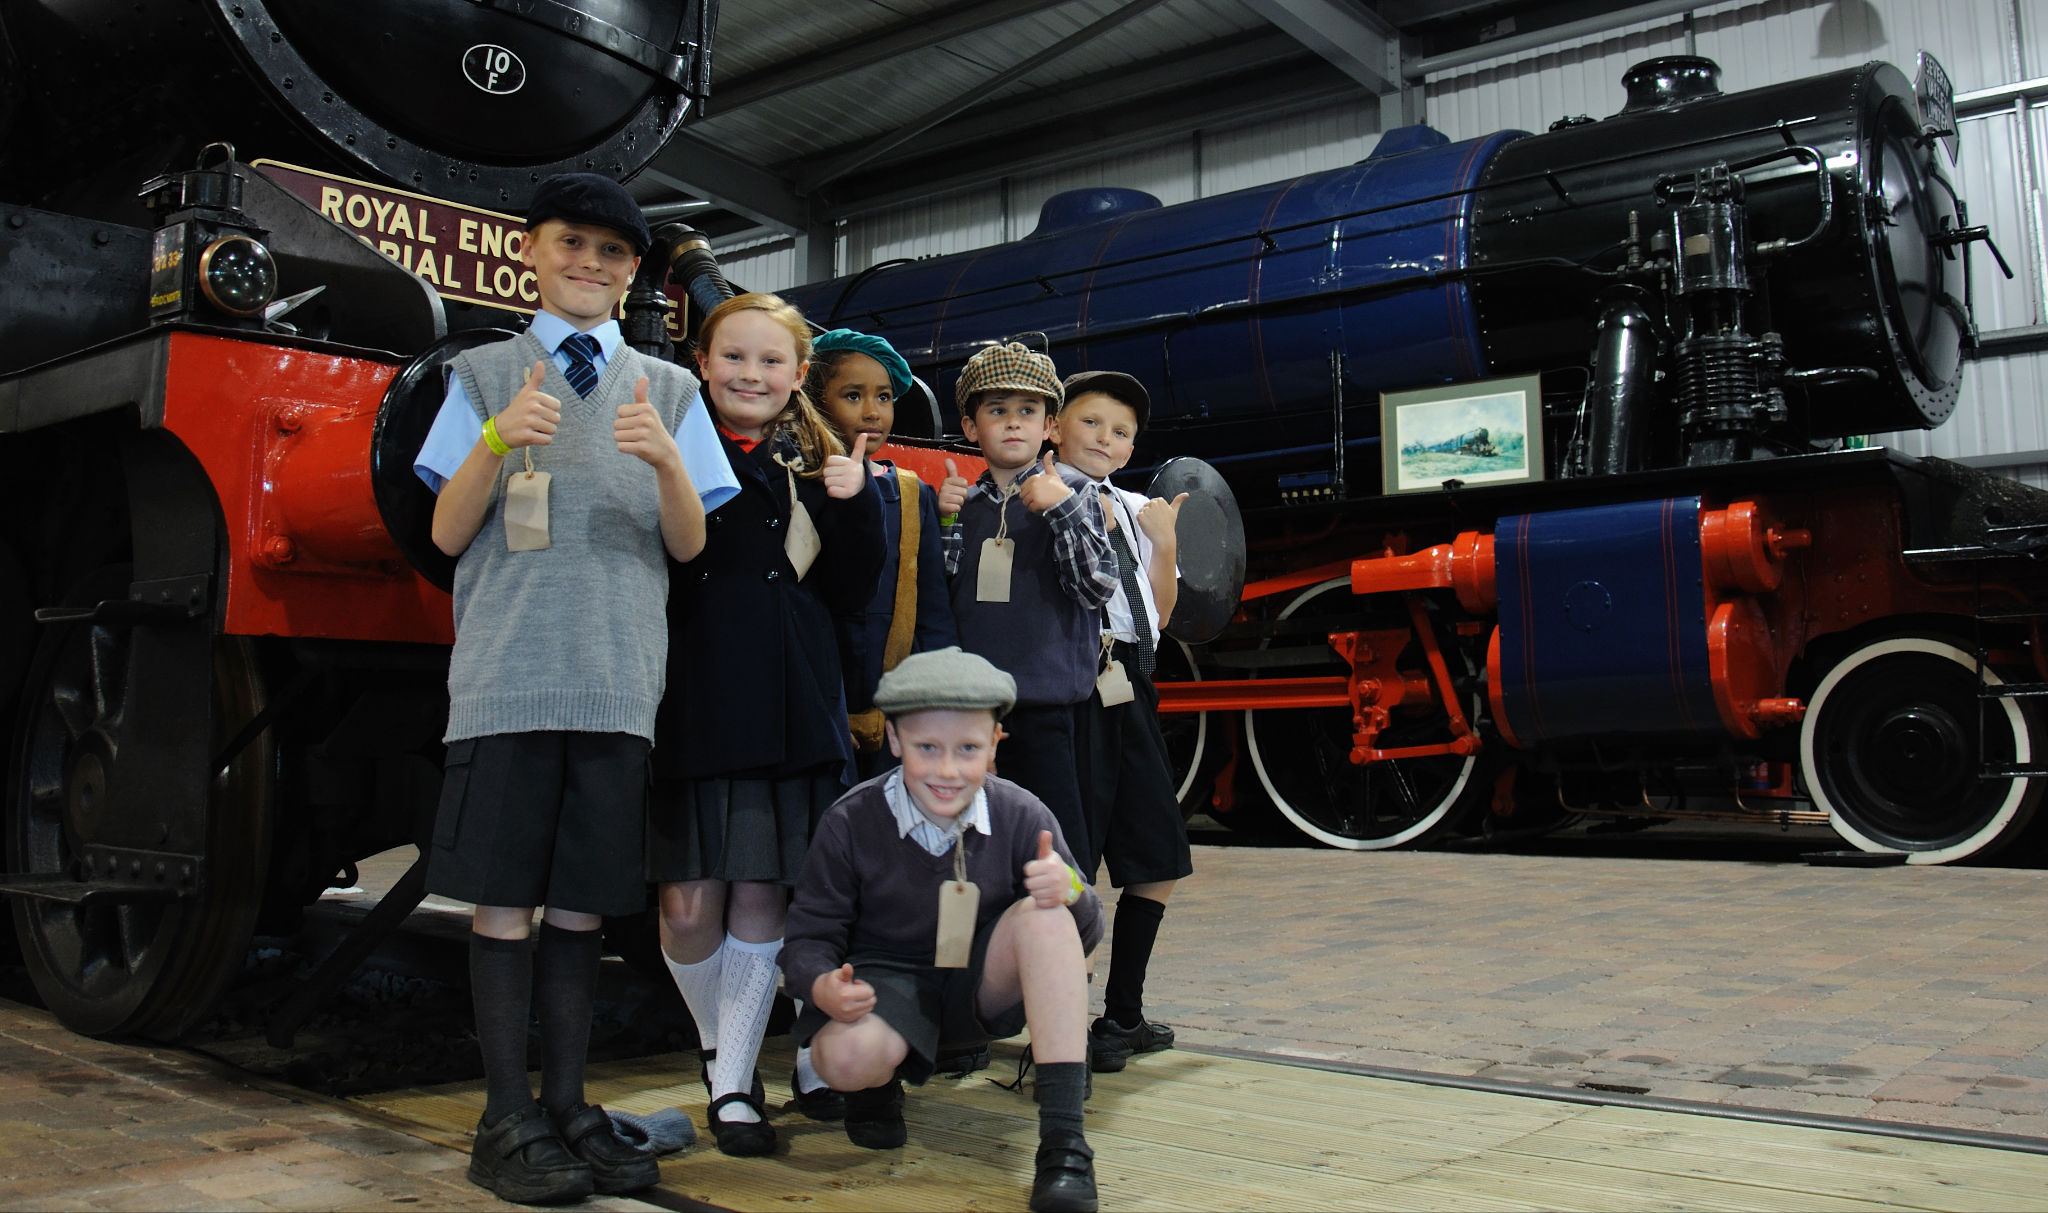 SVR's education programme hits 200k milestone